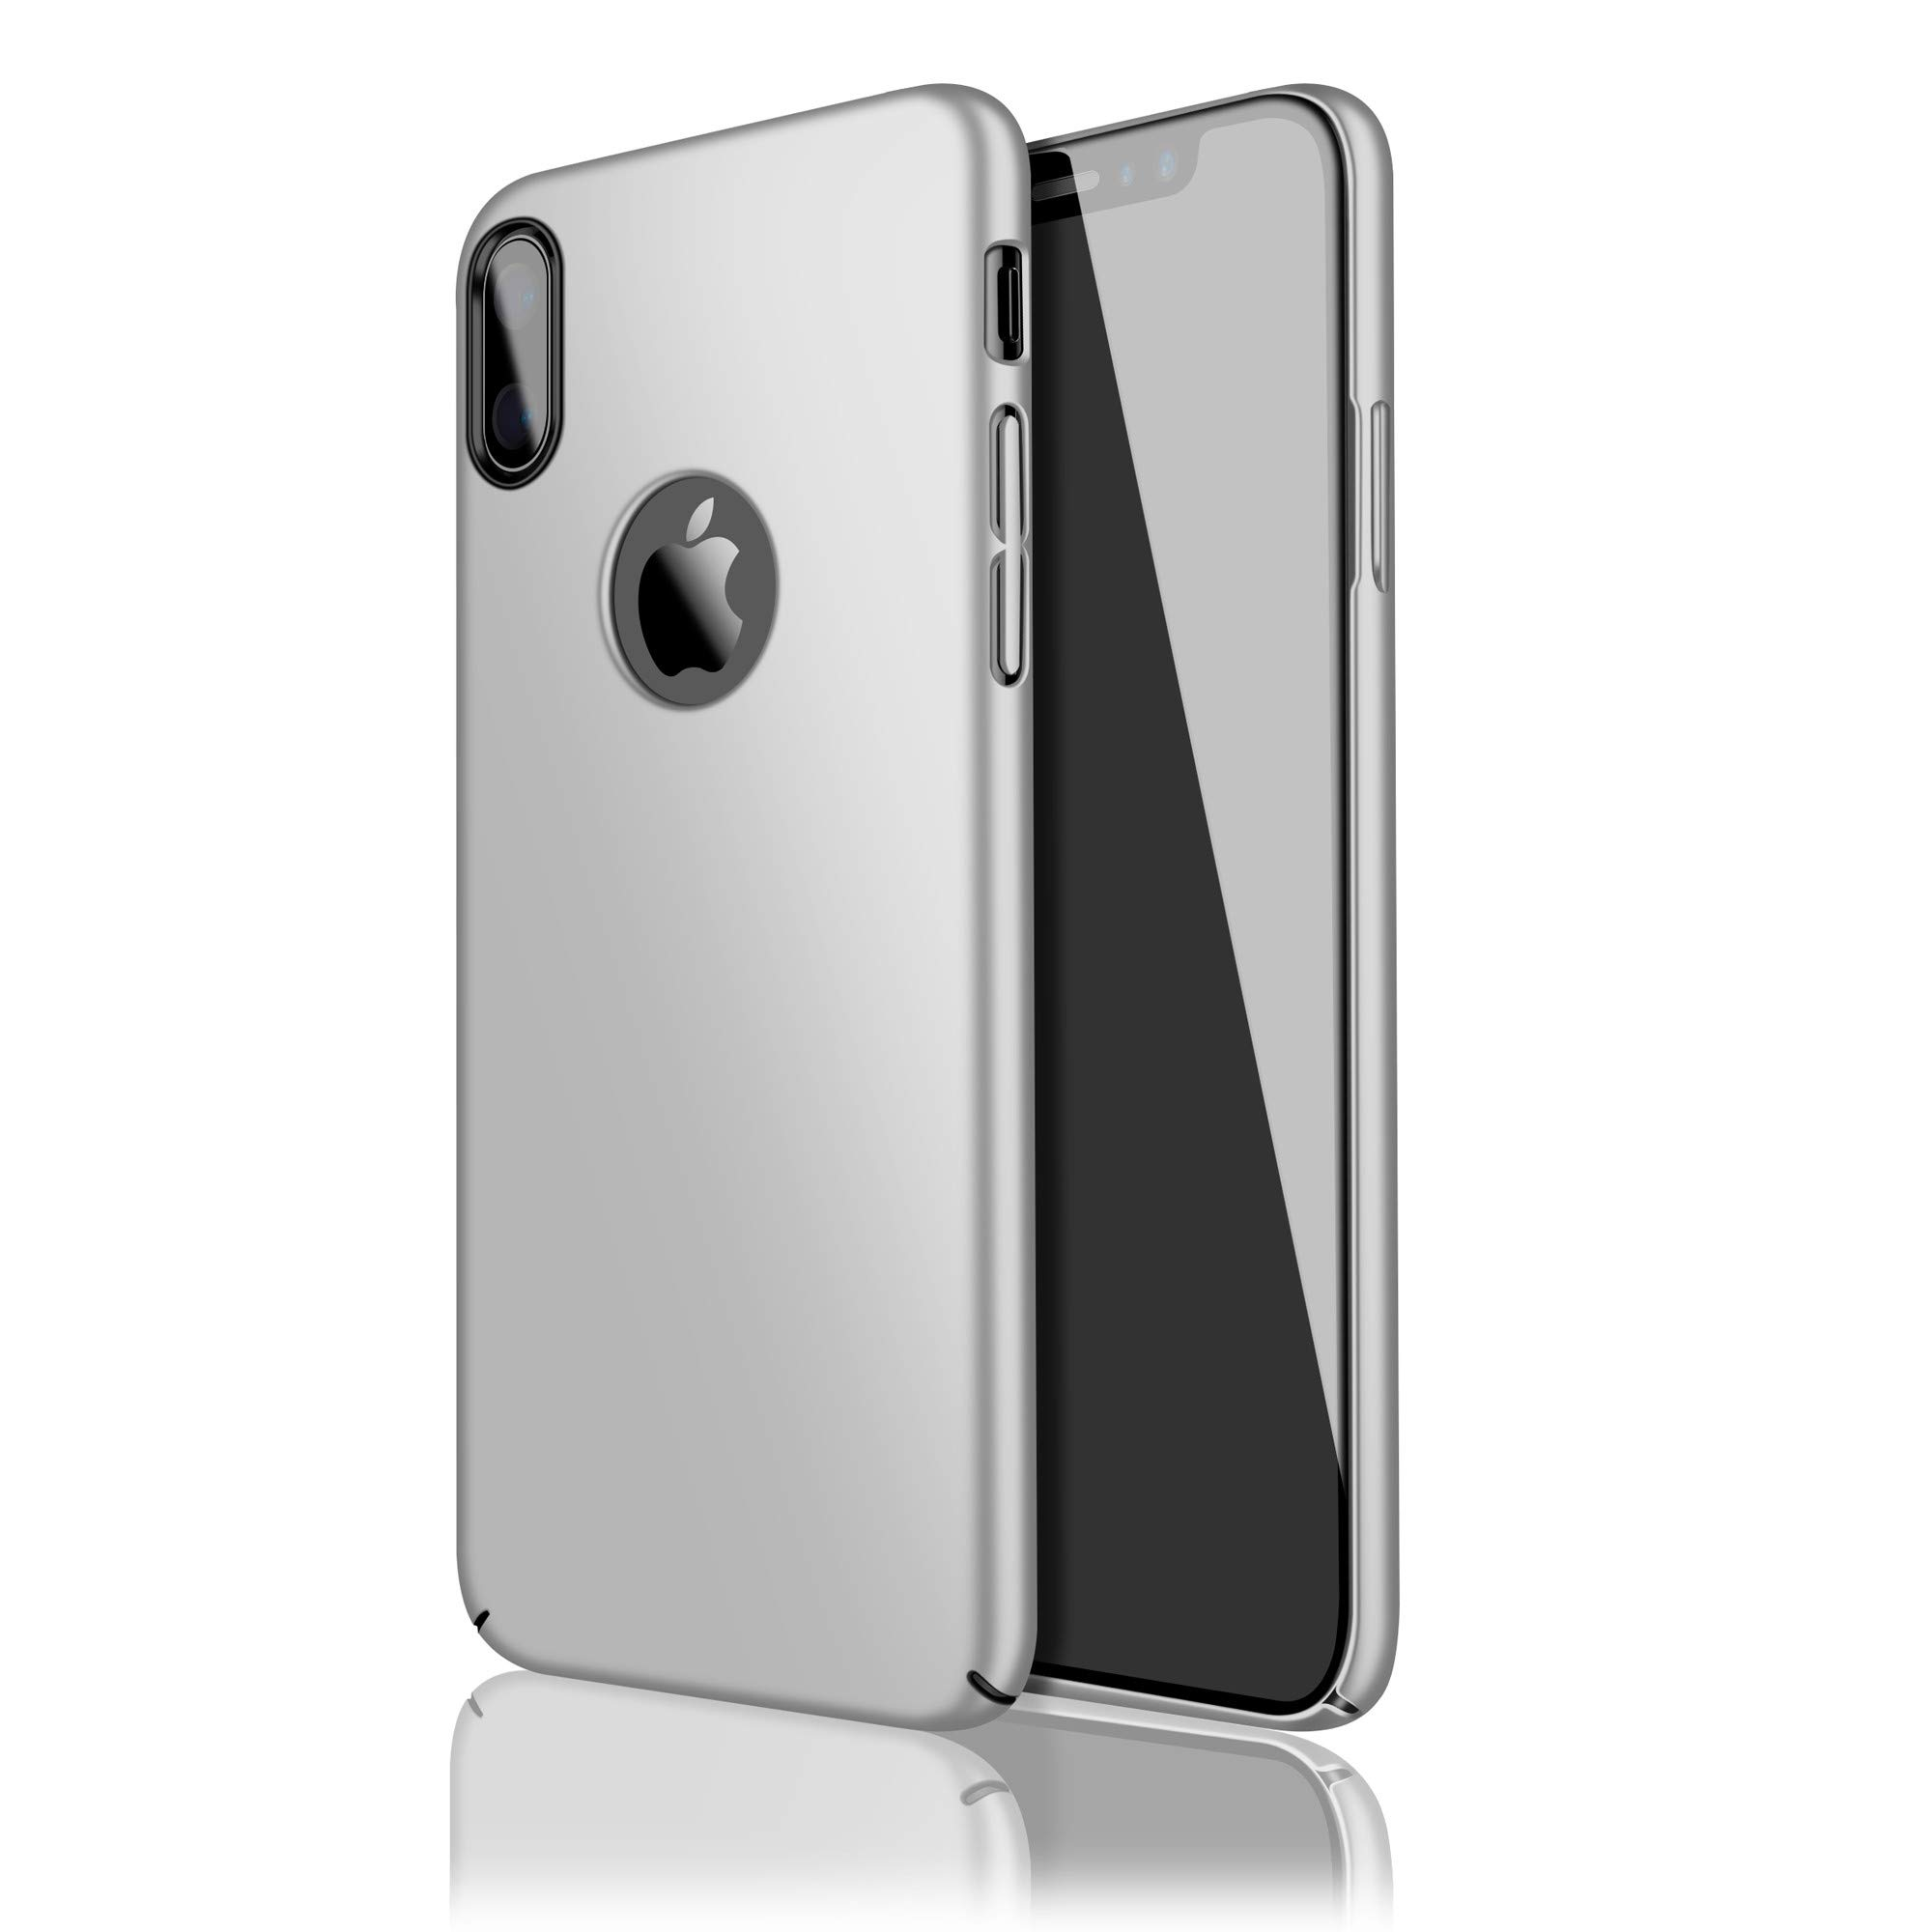 Case for iPhone X,Eartonx Slim Fit Shell Hard Plastic PC Thin Mobile Phone Cover Case Compatible with iPhone X (5.8'')(2017)(Silvery)